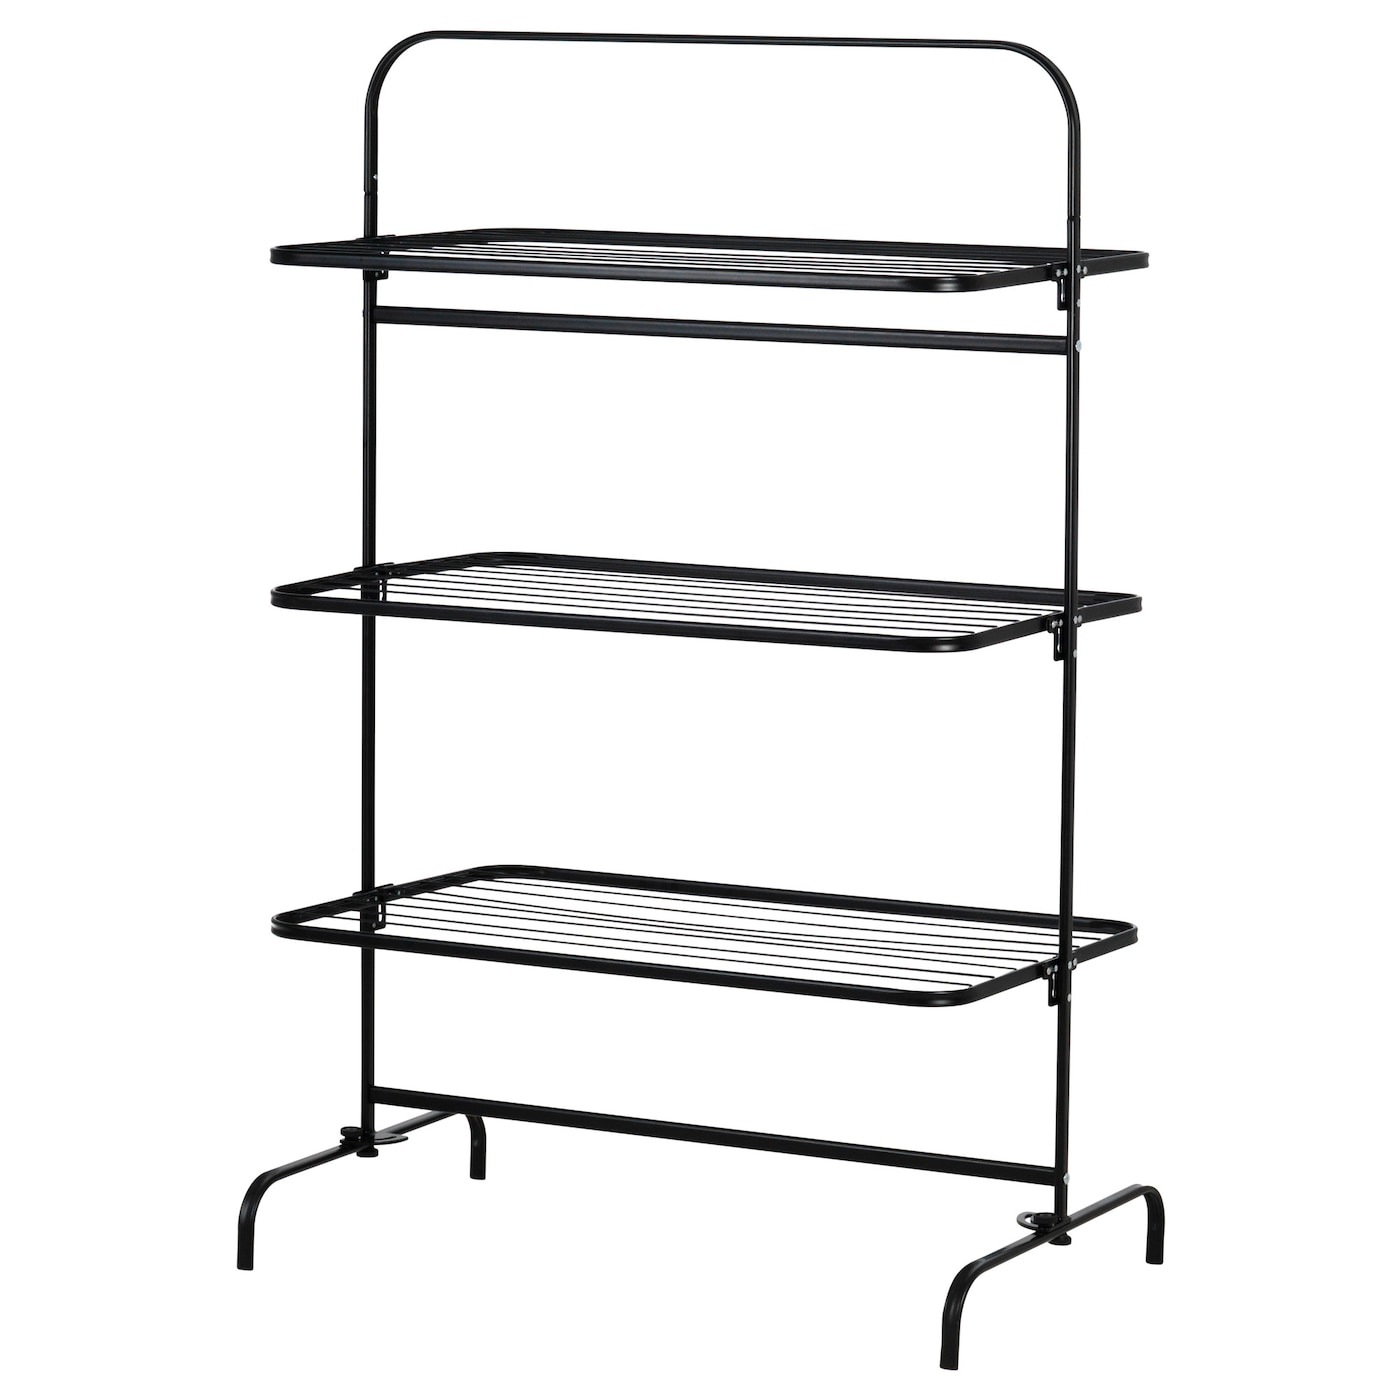 IKEA MULIG drying rack 3 levels, in/outdoor Suitable for both indoor and outdoor use.